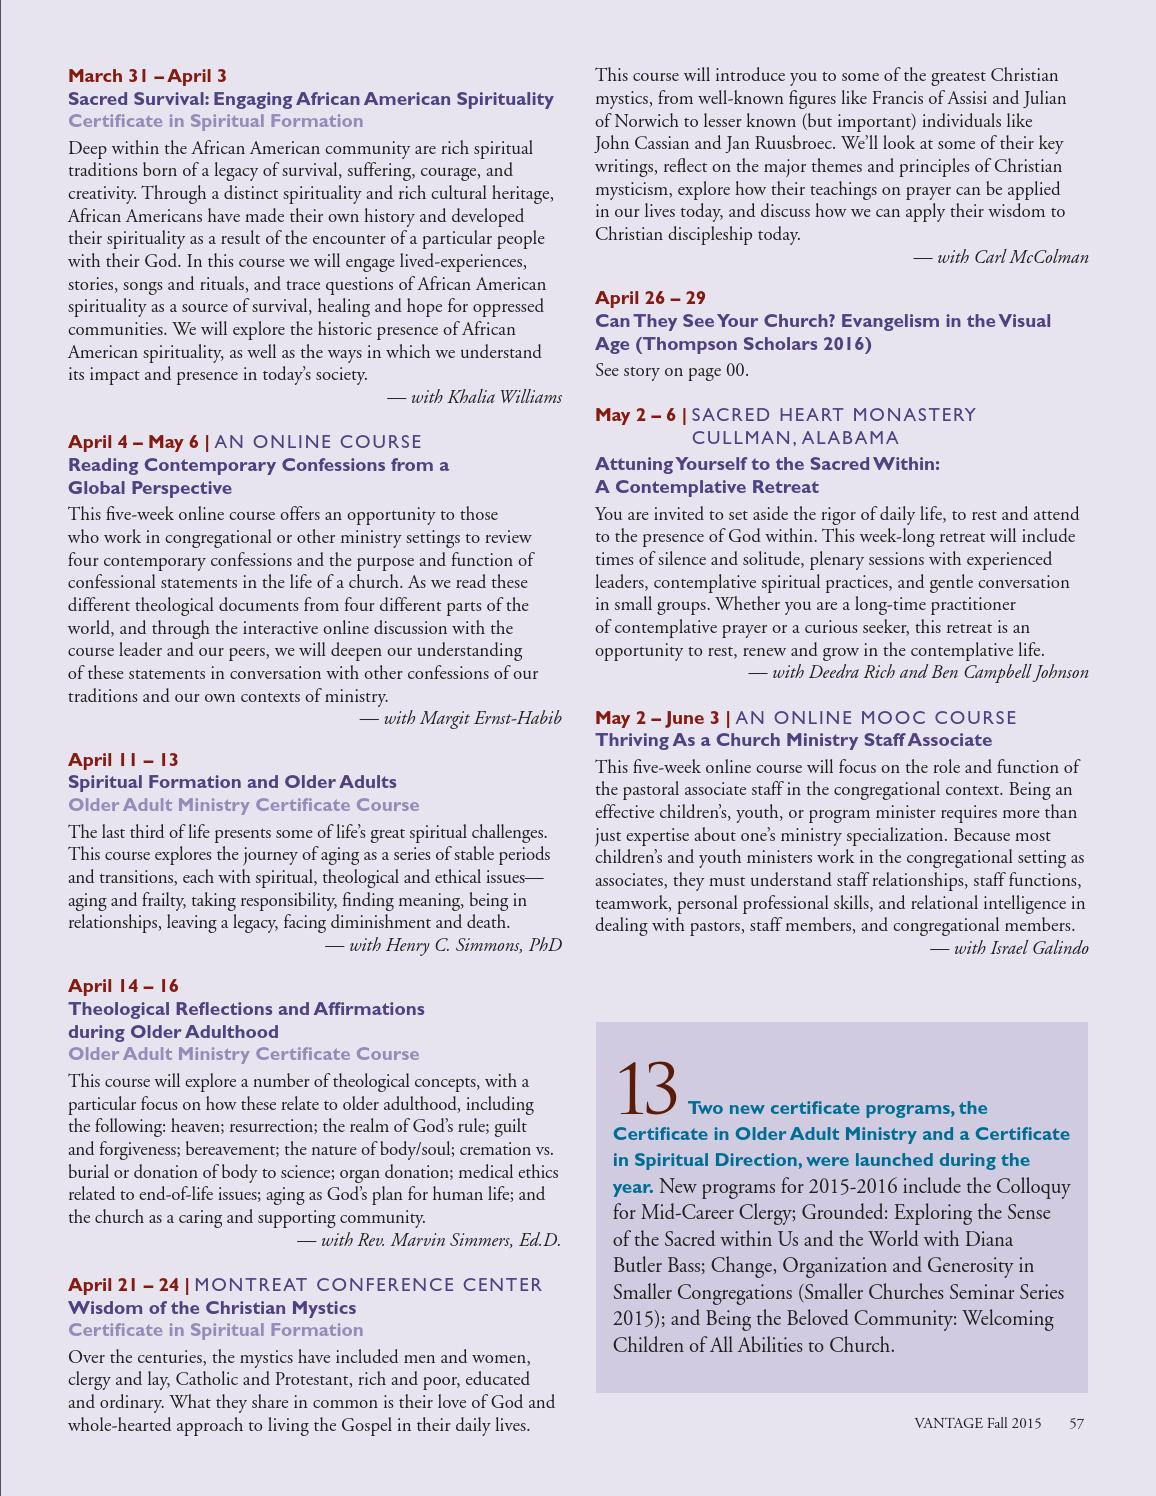 Vantage fall 2015 by columbia theological seminary issuu 1betcityfo Choice Image